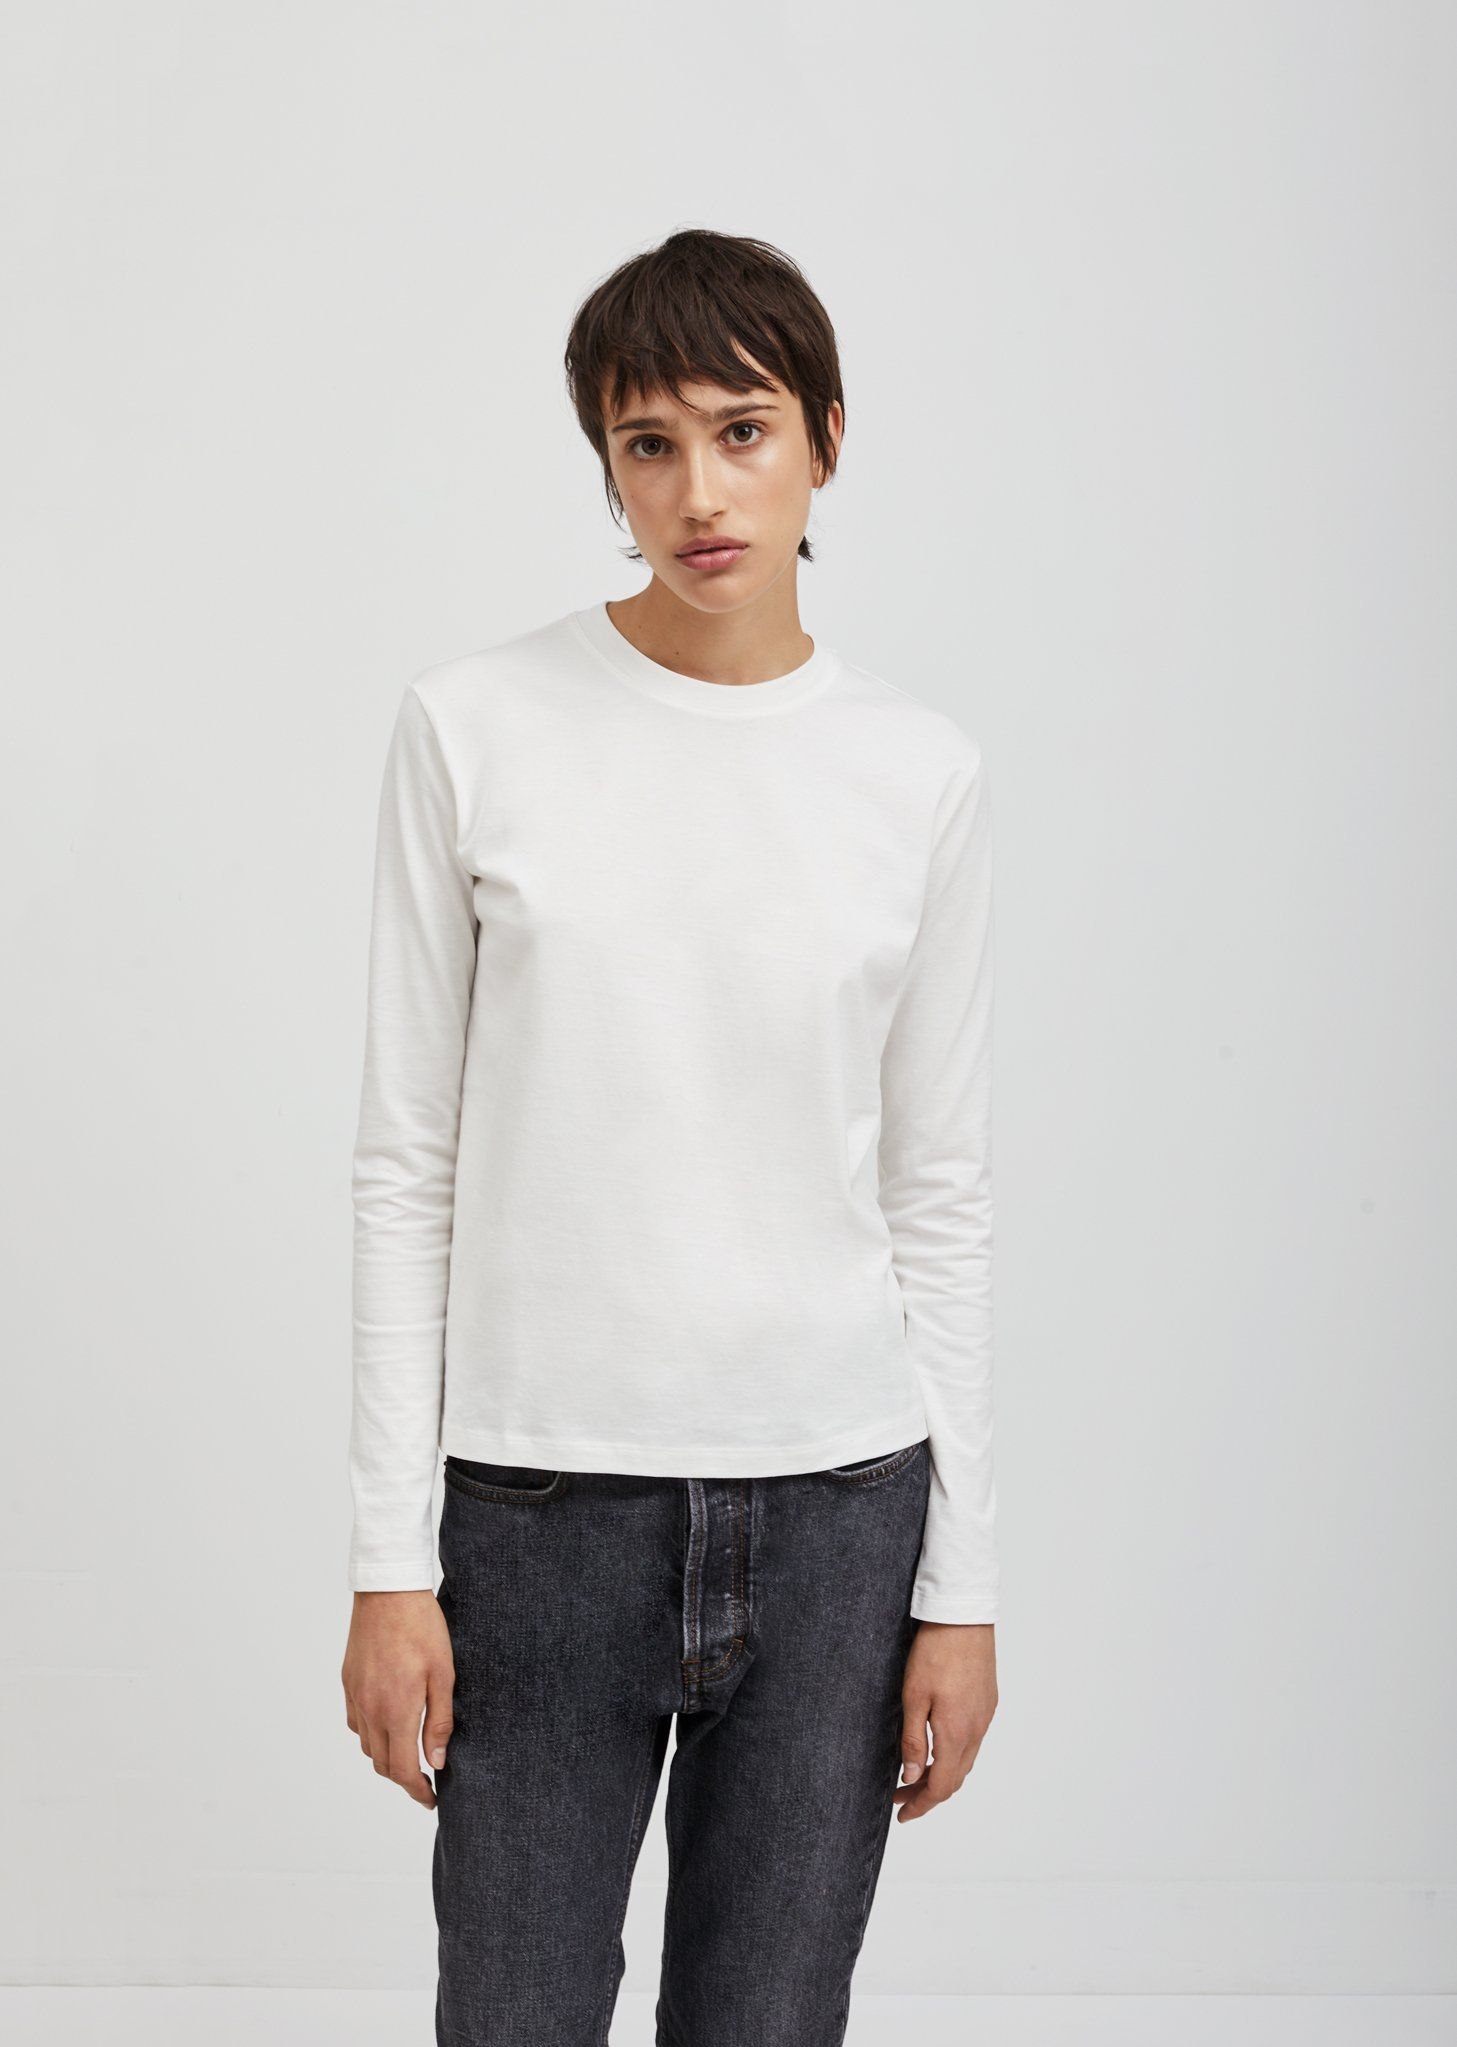 65d318127971 White long sleeve tee in cotton jersey with ribbed neckline. Relaxed, slim  fit.